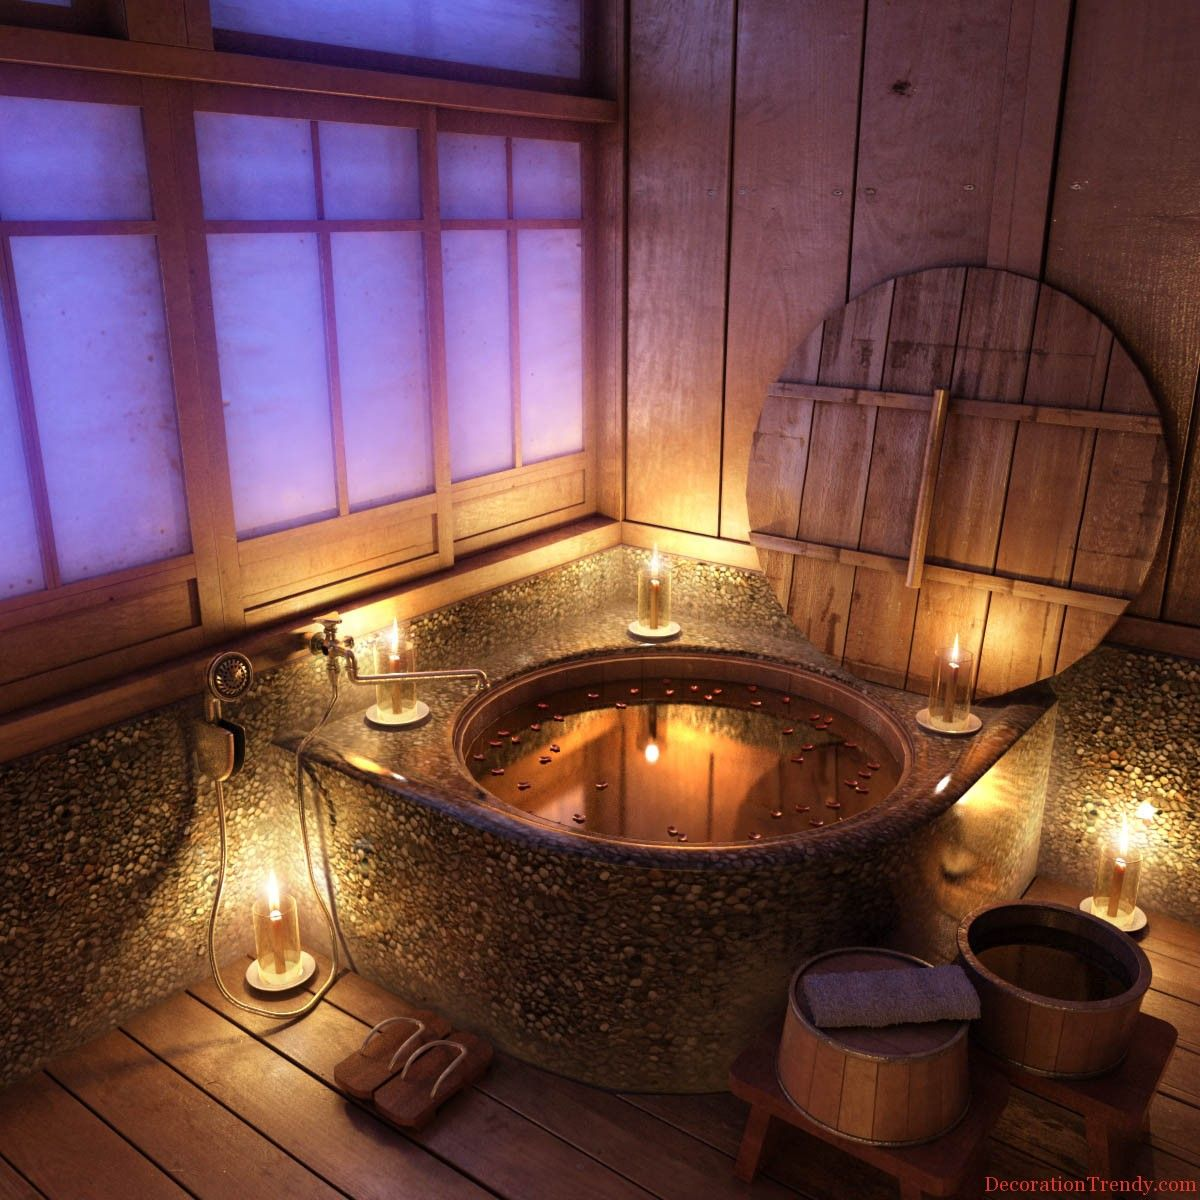 Bathtub Design For 2014 Bathroom Decoration